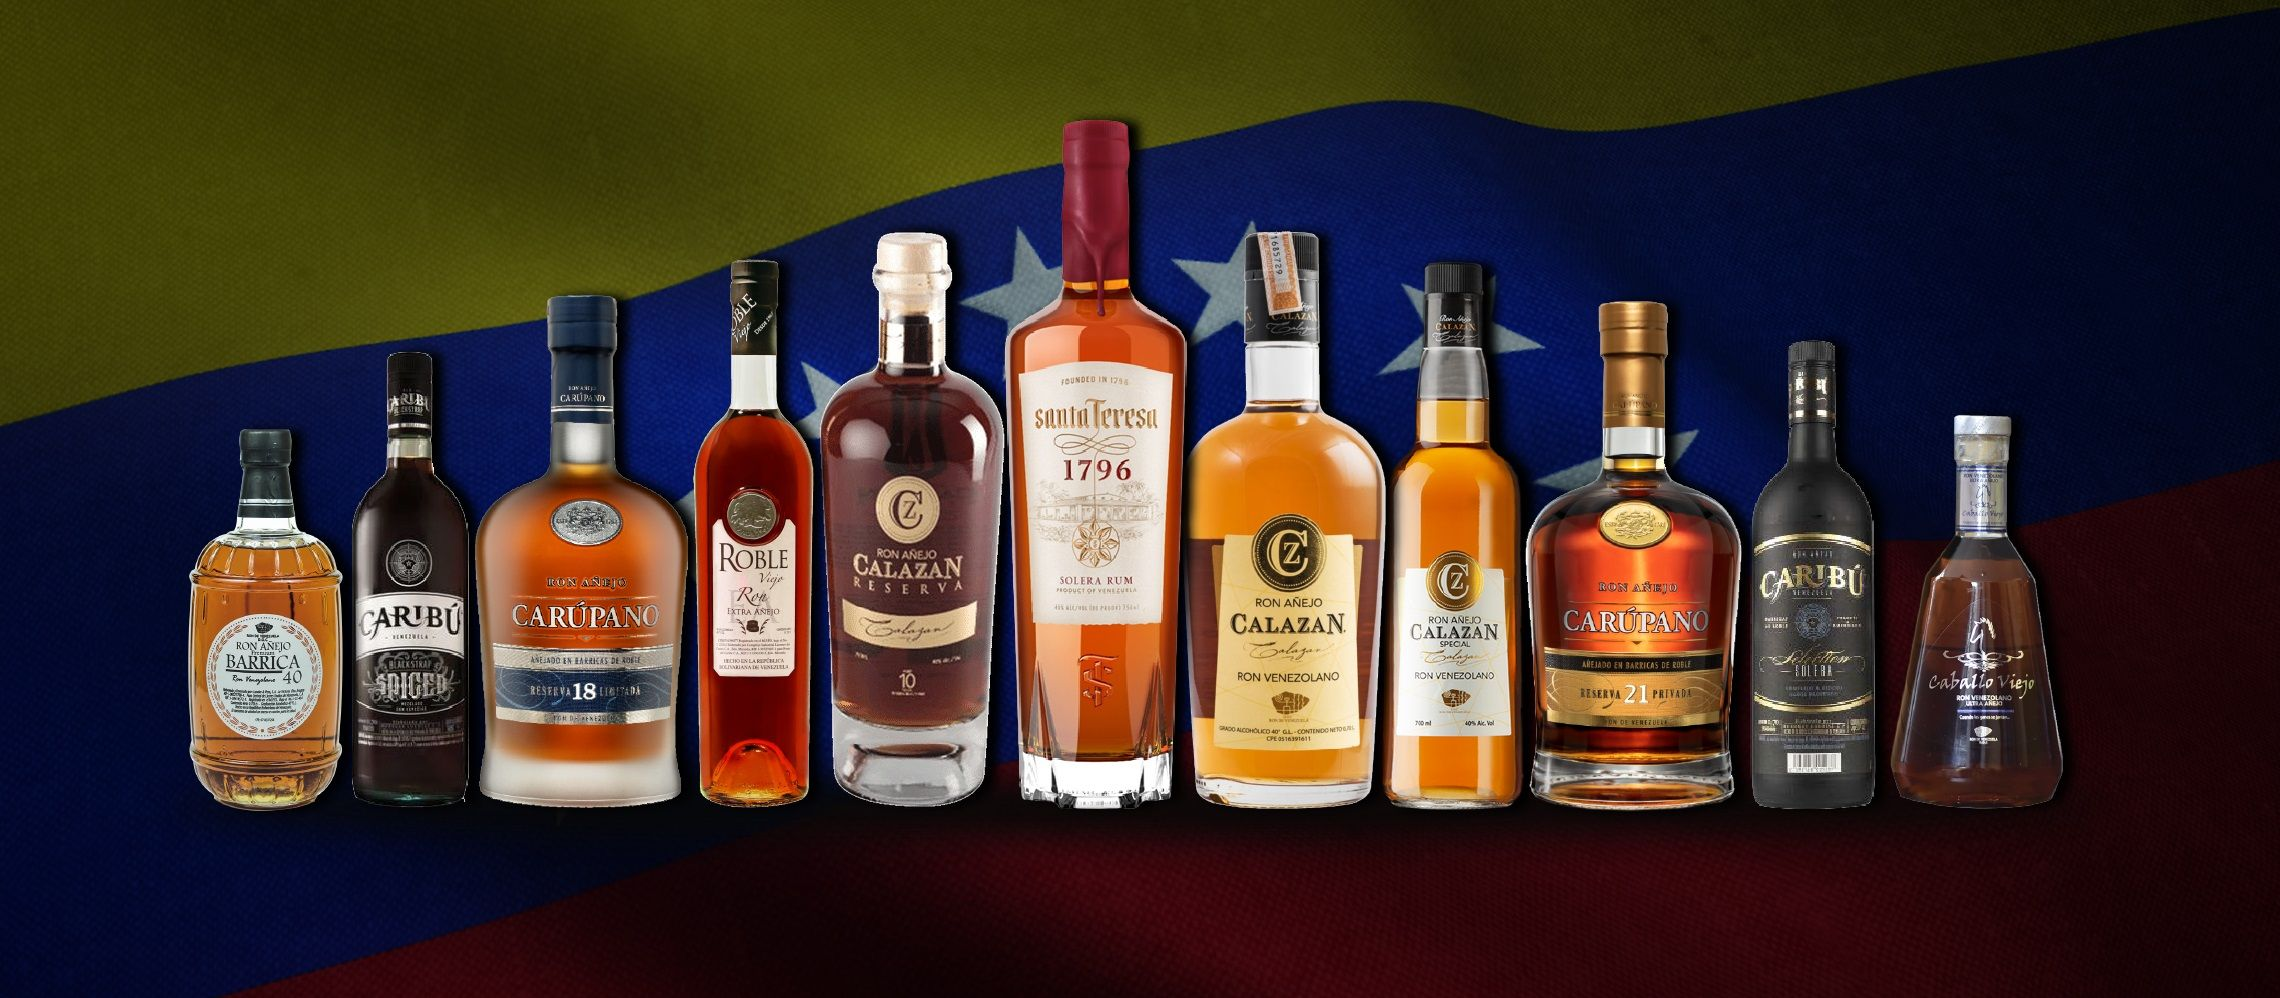 Photo for: 16 Venezuelan Rums You Need To Stock Up